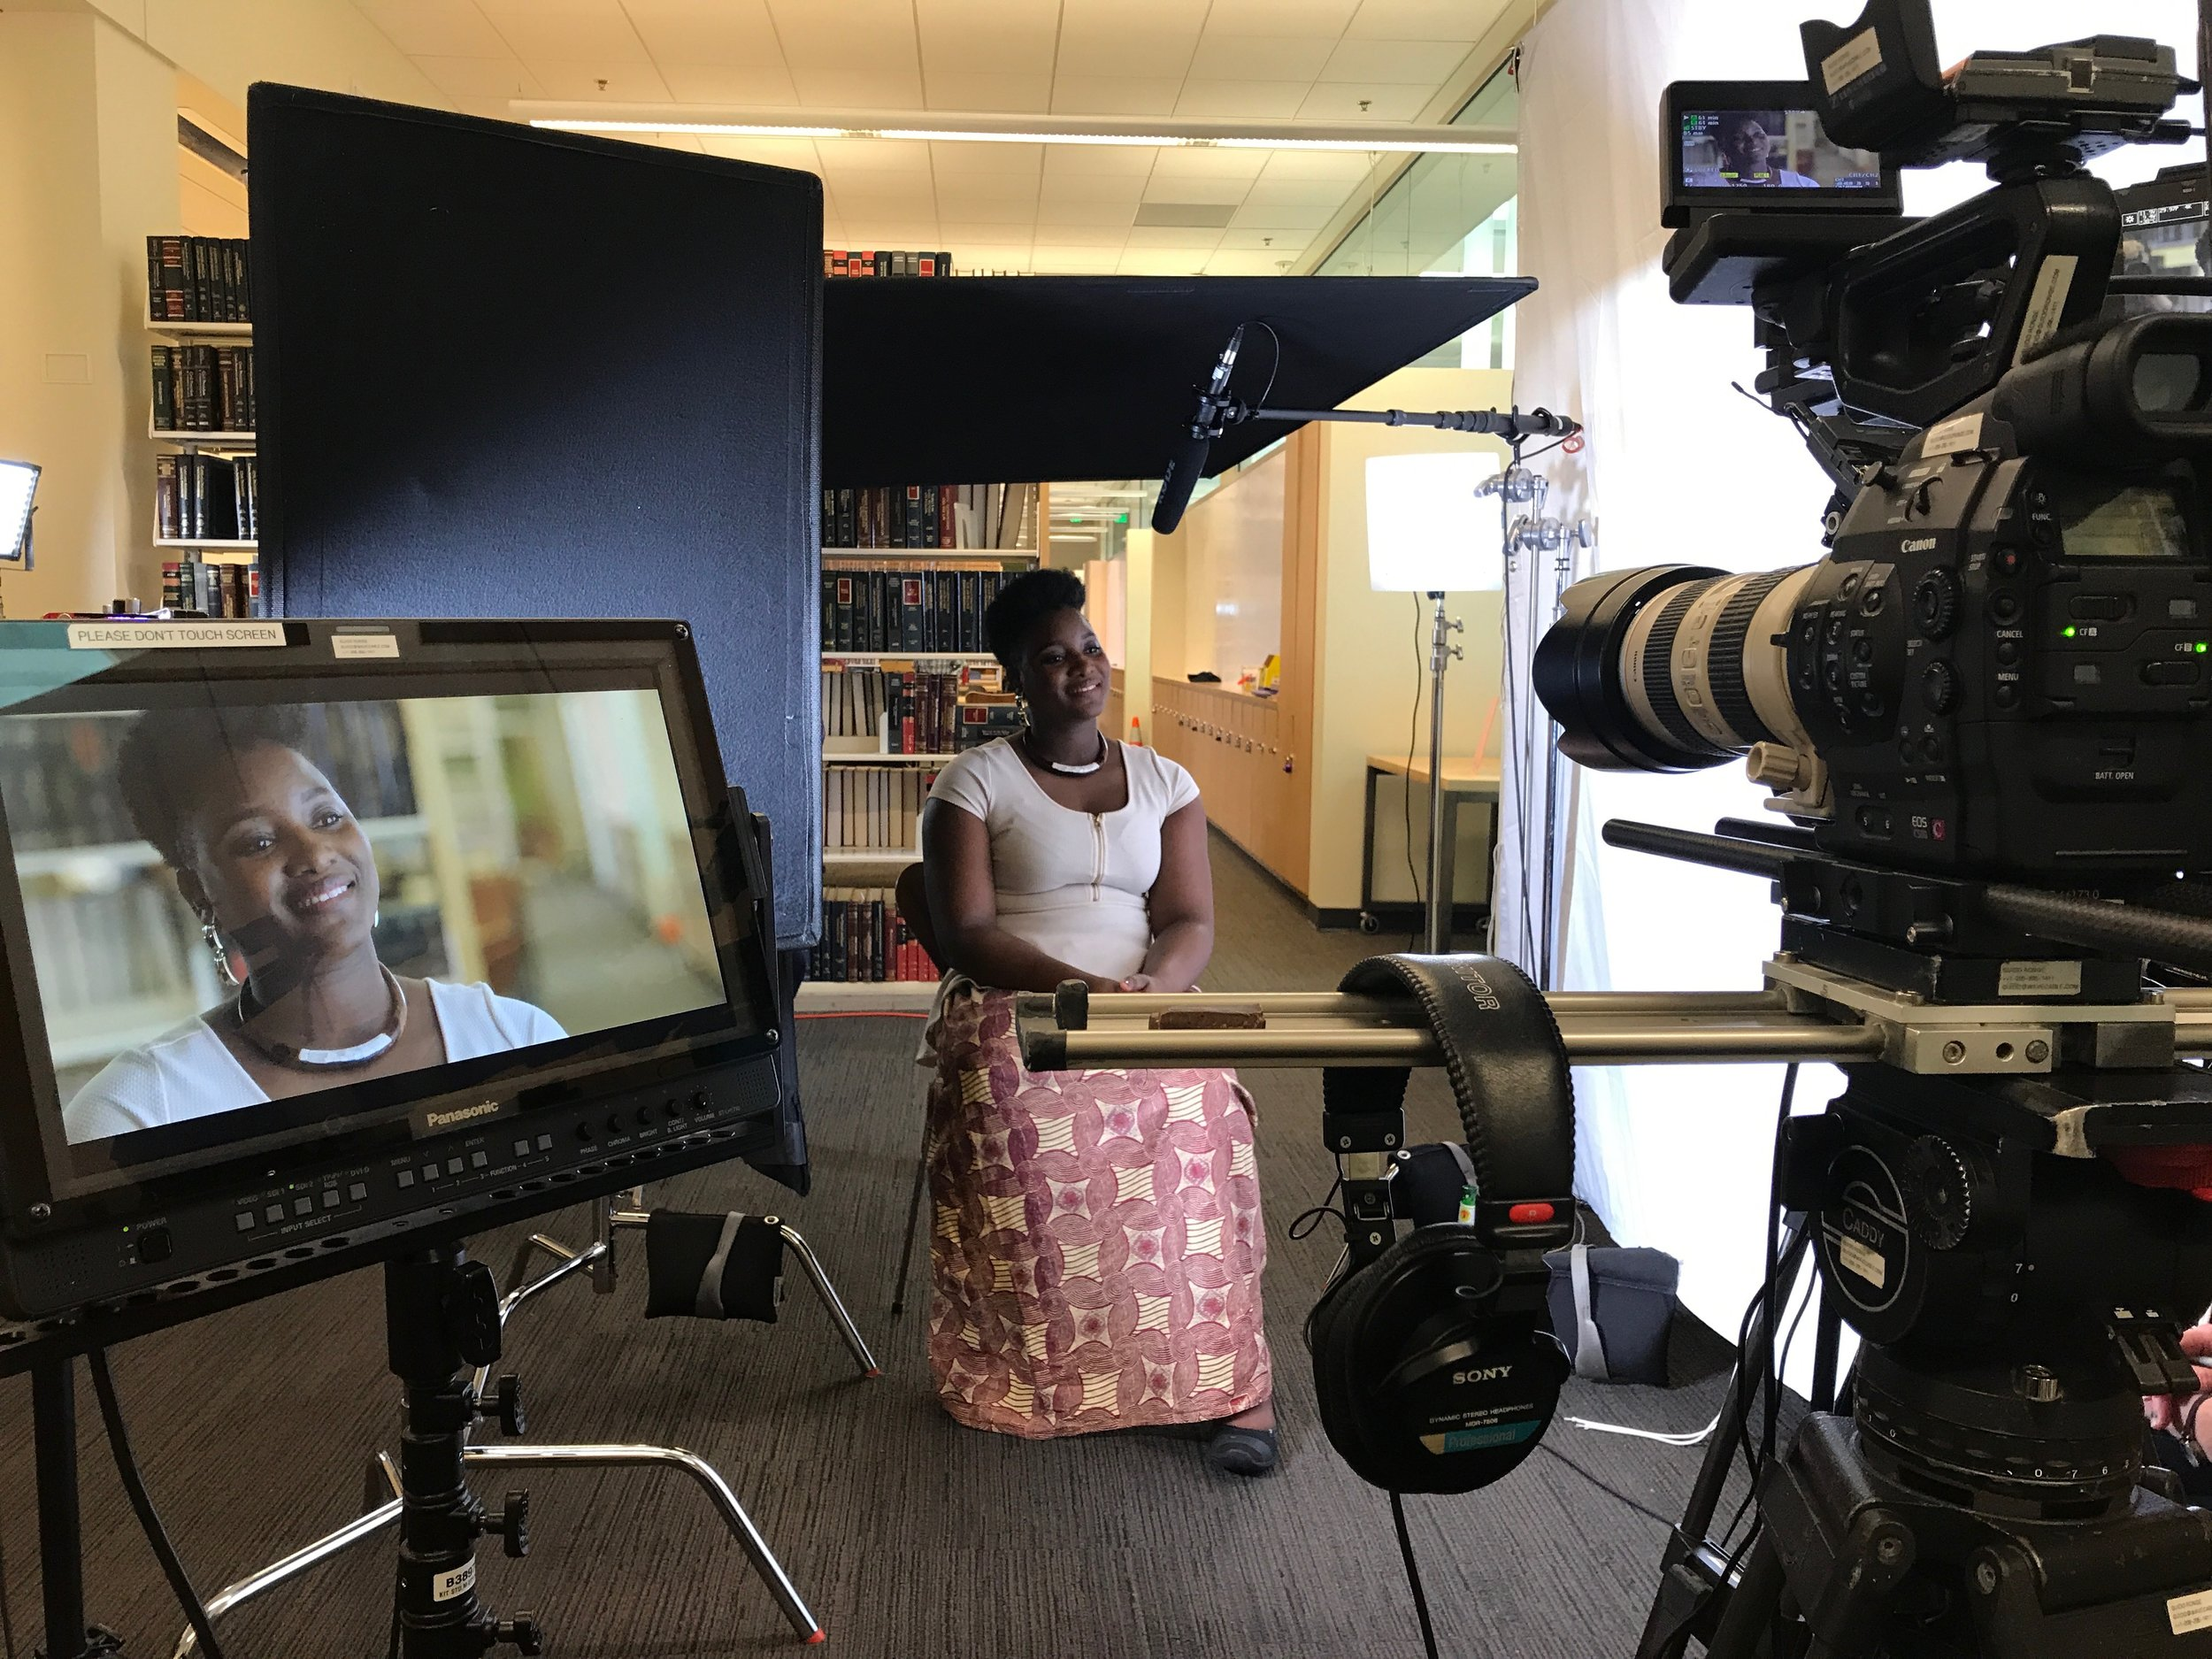 We had the privilege to interview Isatou at the University of Washington in the Law Library